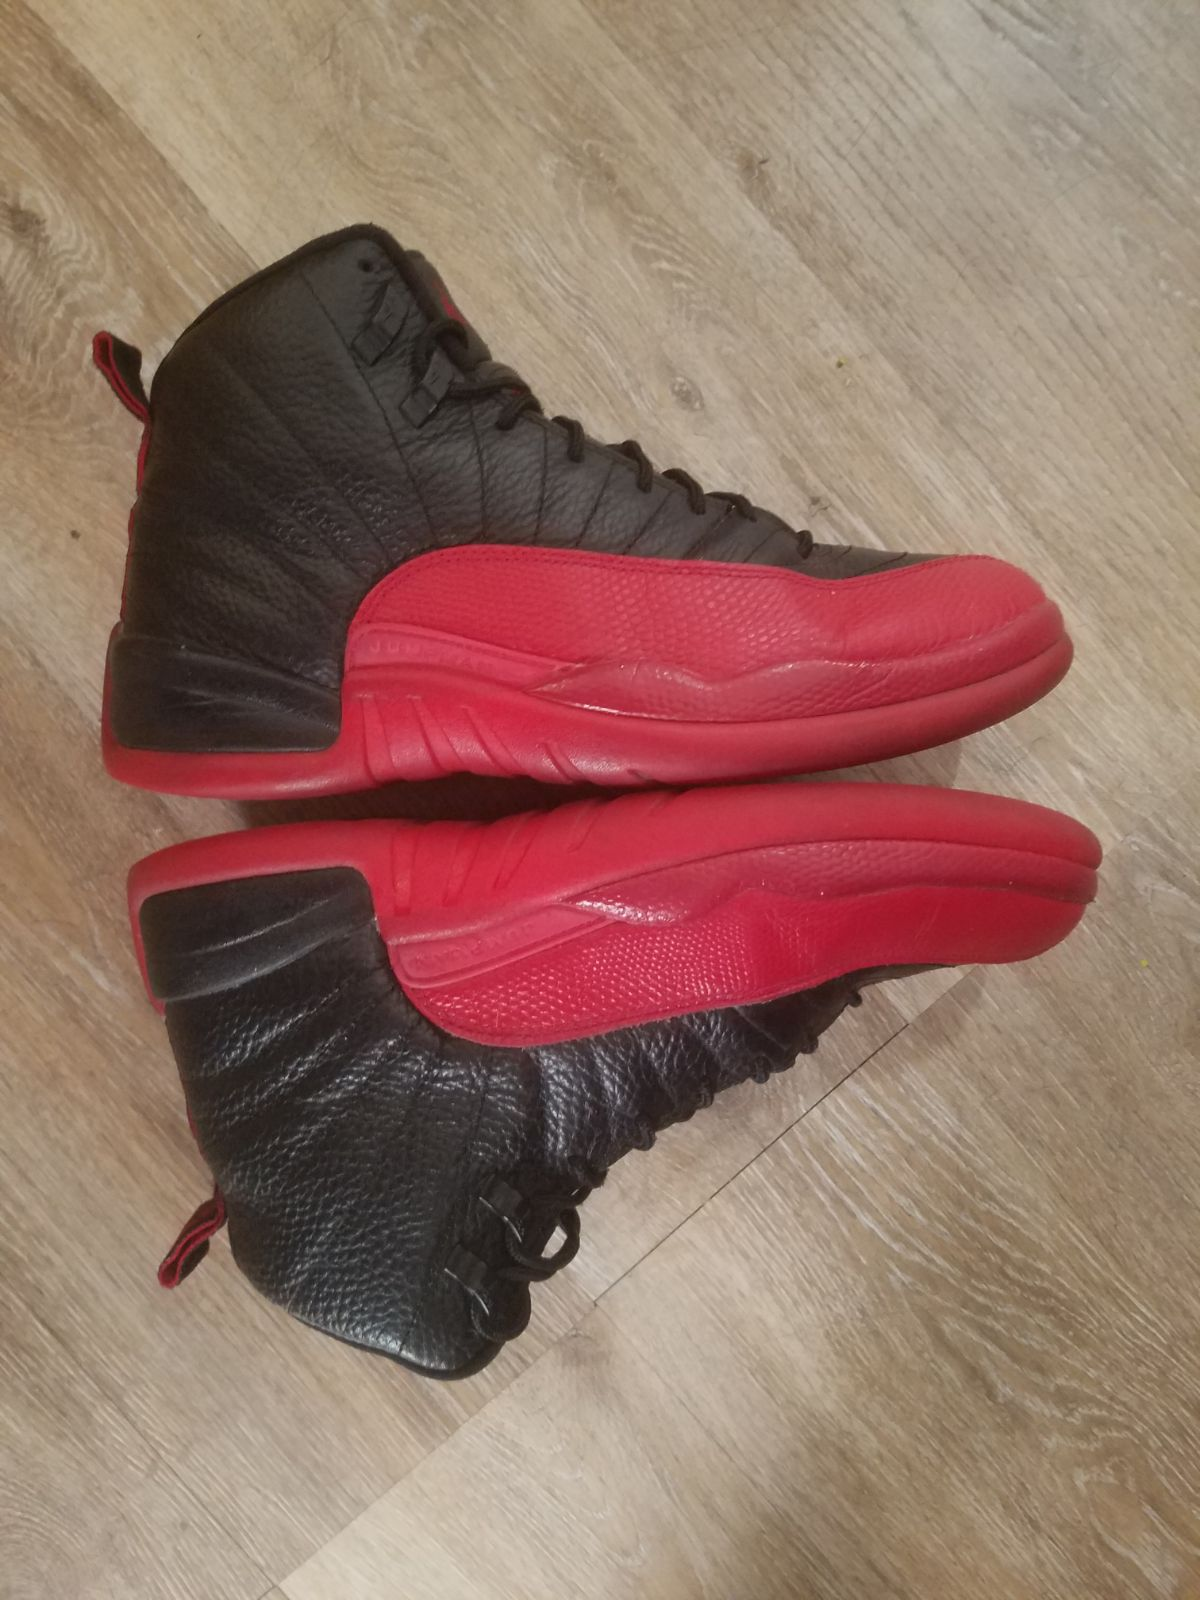 Jordan retro 12 flu games